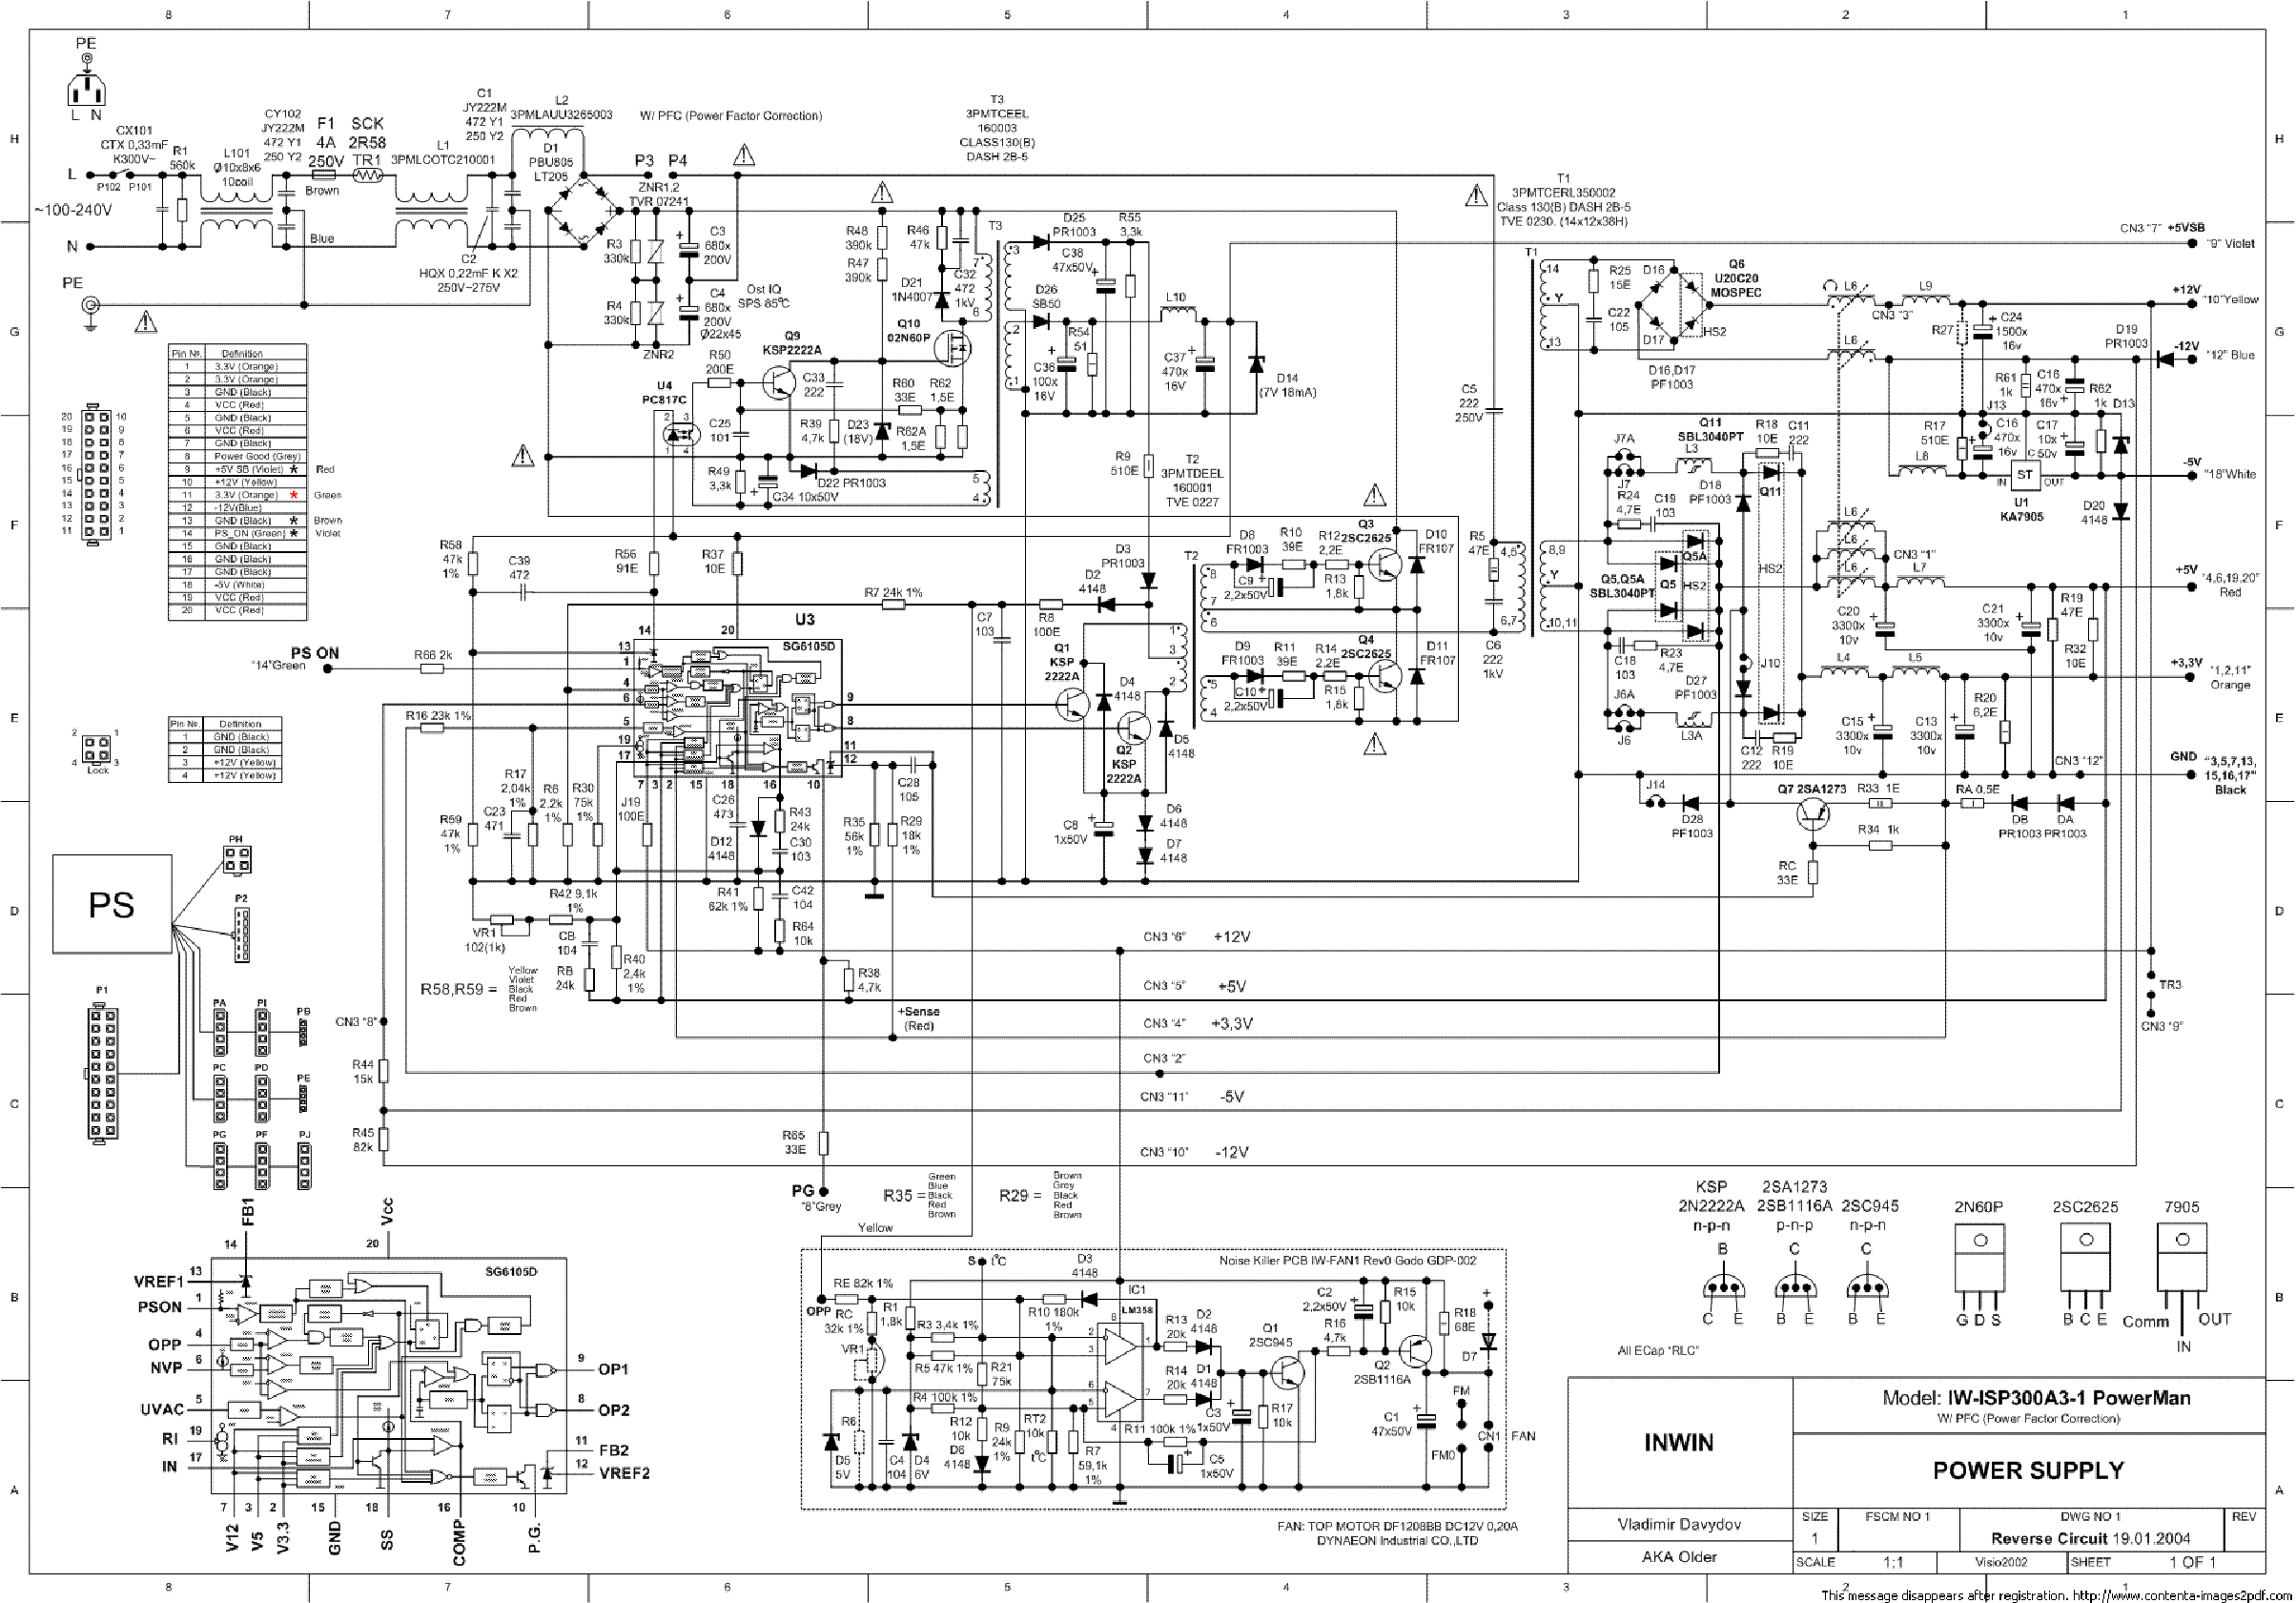 computer power supply 350 watts schematic diagram data wiring u2022 rh kshjgn pw